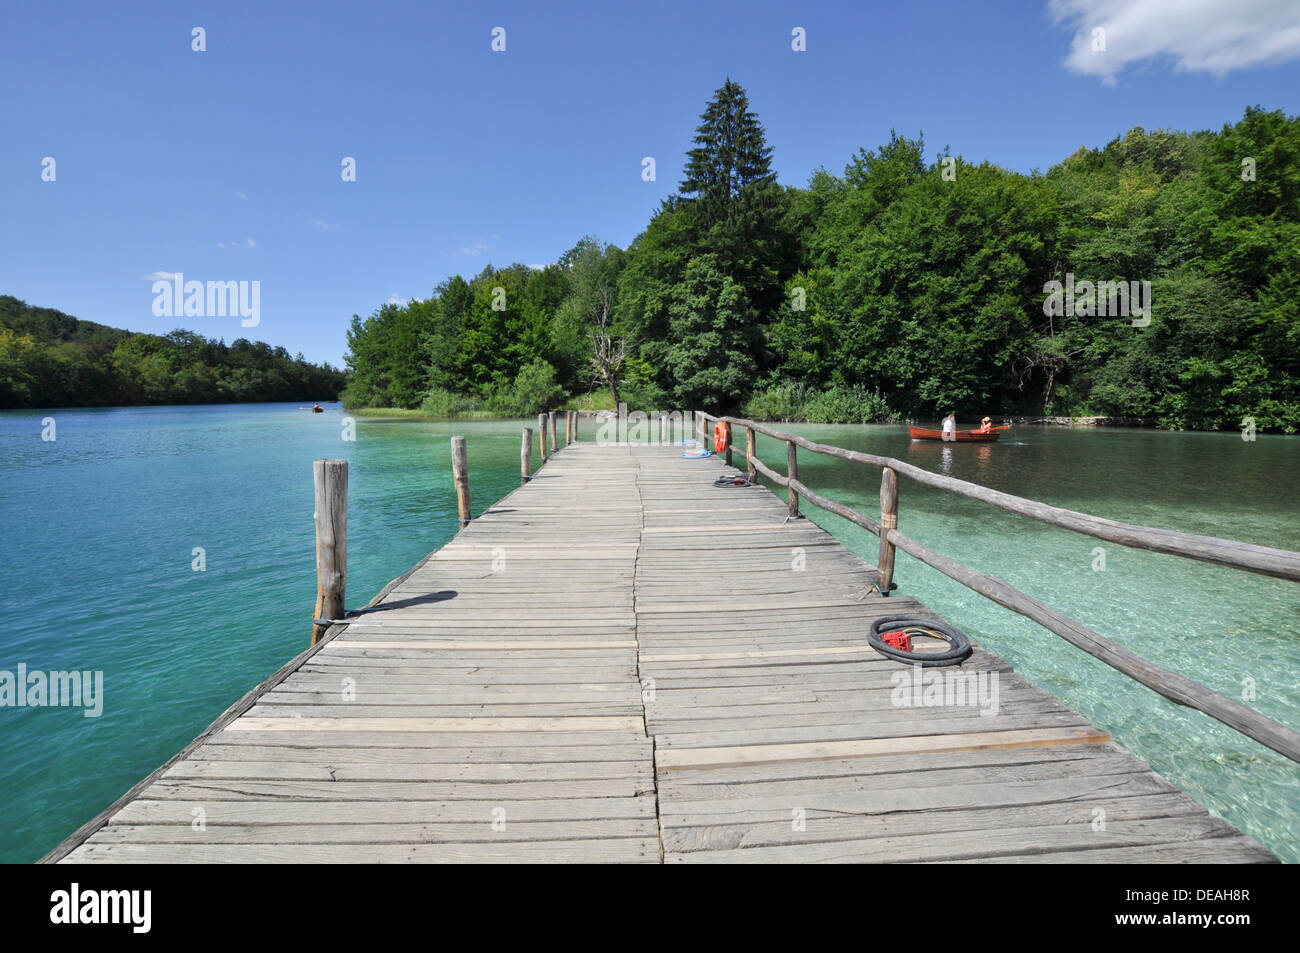 Croatia, Plitvice Lakes National Park, A wooden pathway provides easy access Stock Photo